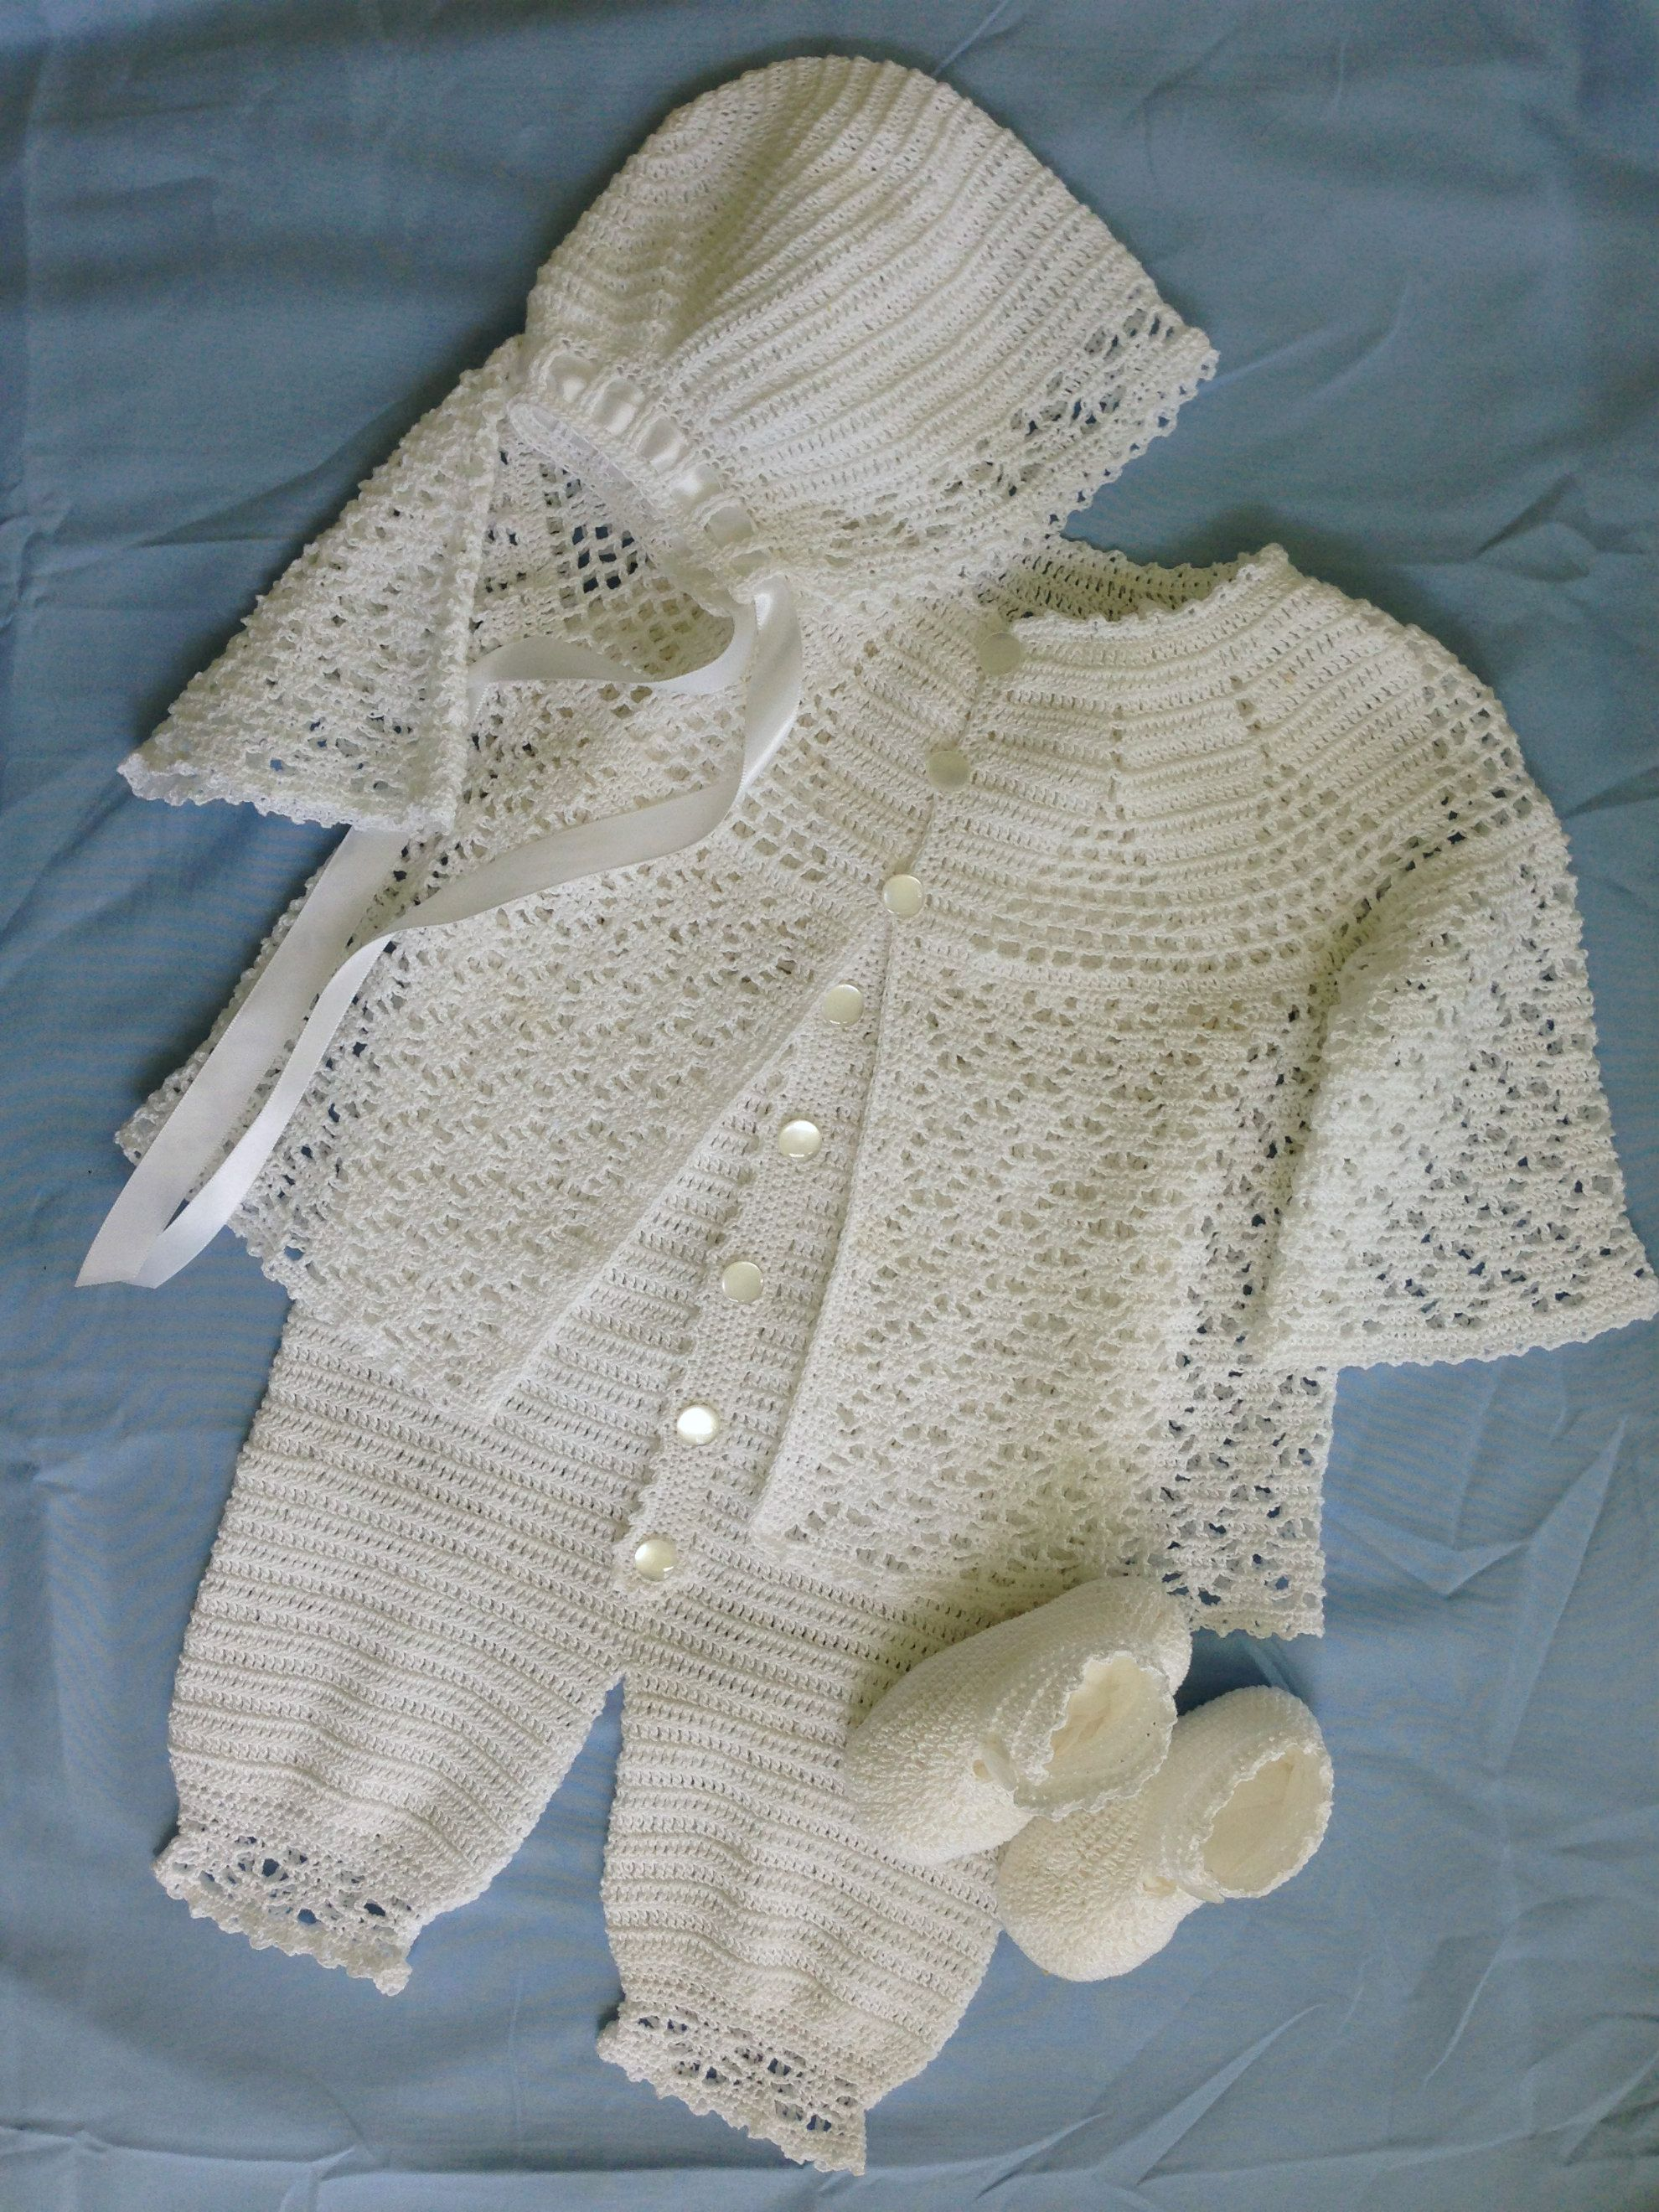 89a7228c0 Baby Boy's Lace Christening Outfit with Jacket, Romper, Cap, and Booties. Fits  4-6 month old. Made with Size 10 crochet cotton.